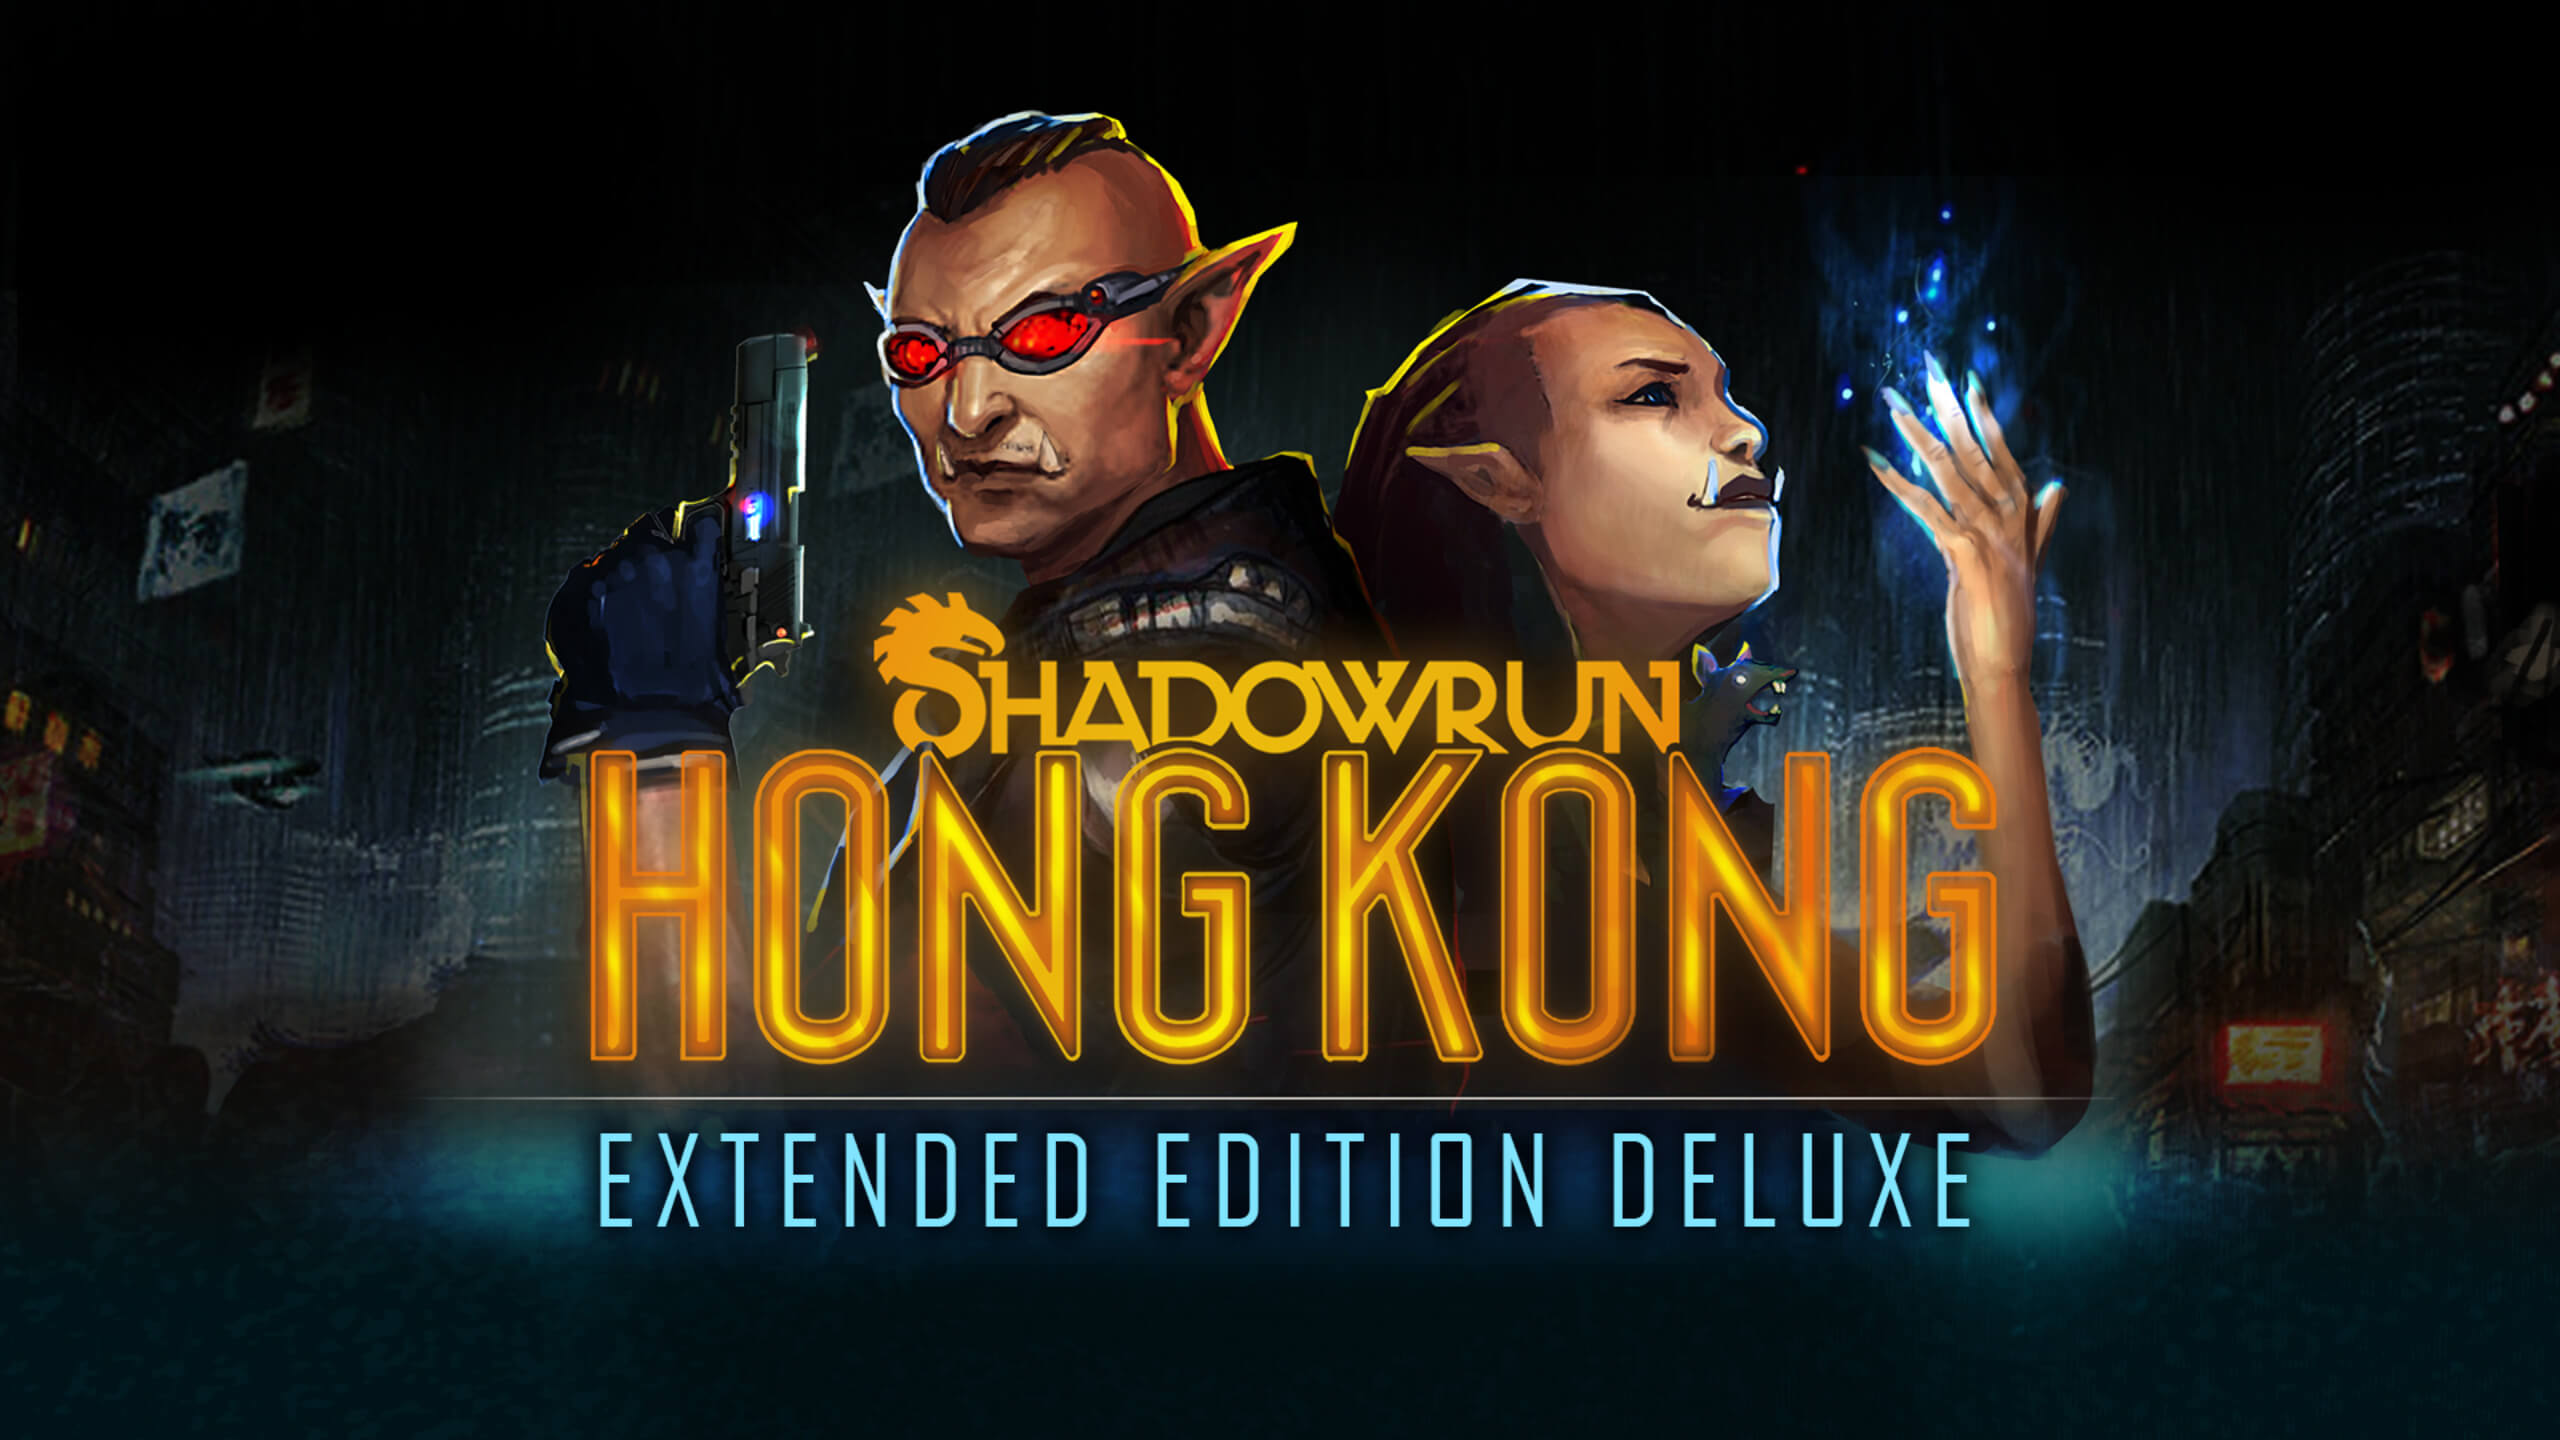 Shadowrun Hong Kong - Extended Edition Deluxe | قم بتنزيلها وشرائها اليوم -  Epic Games Store